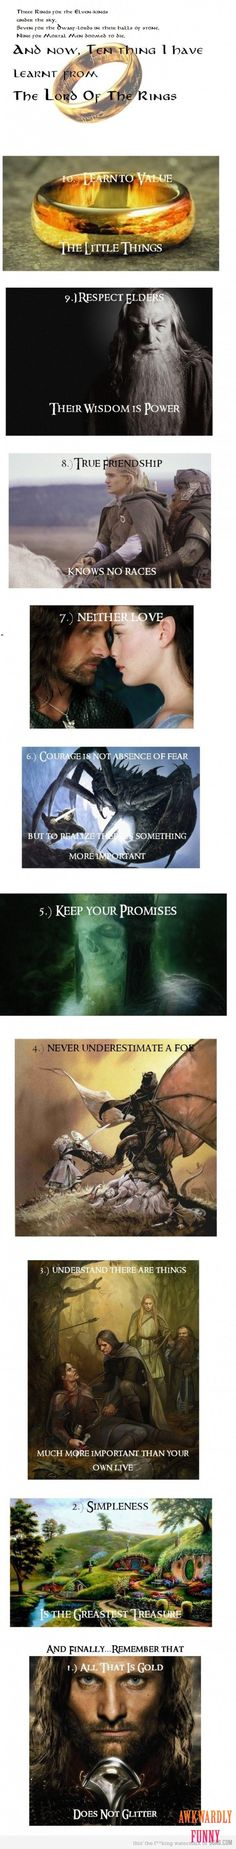 10 things I've learned from The Lord of the Rings.